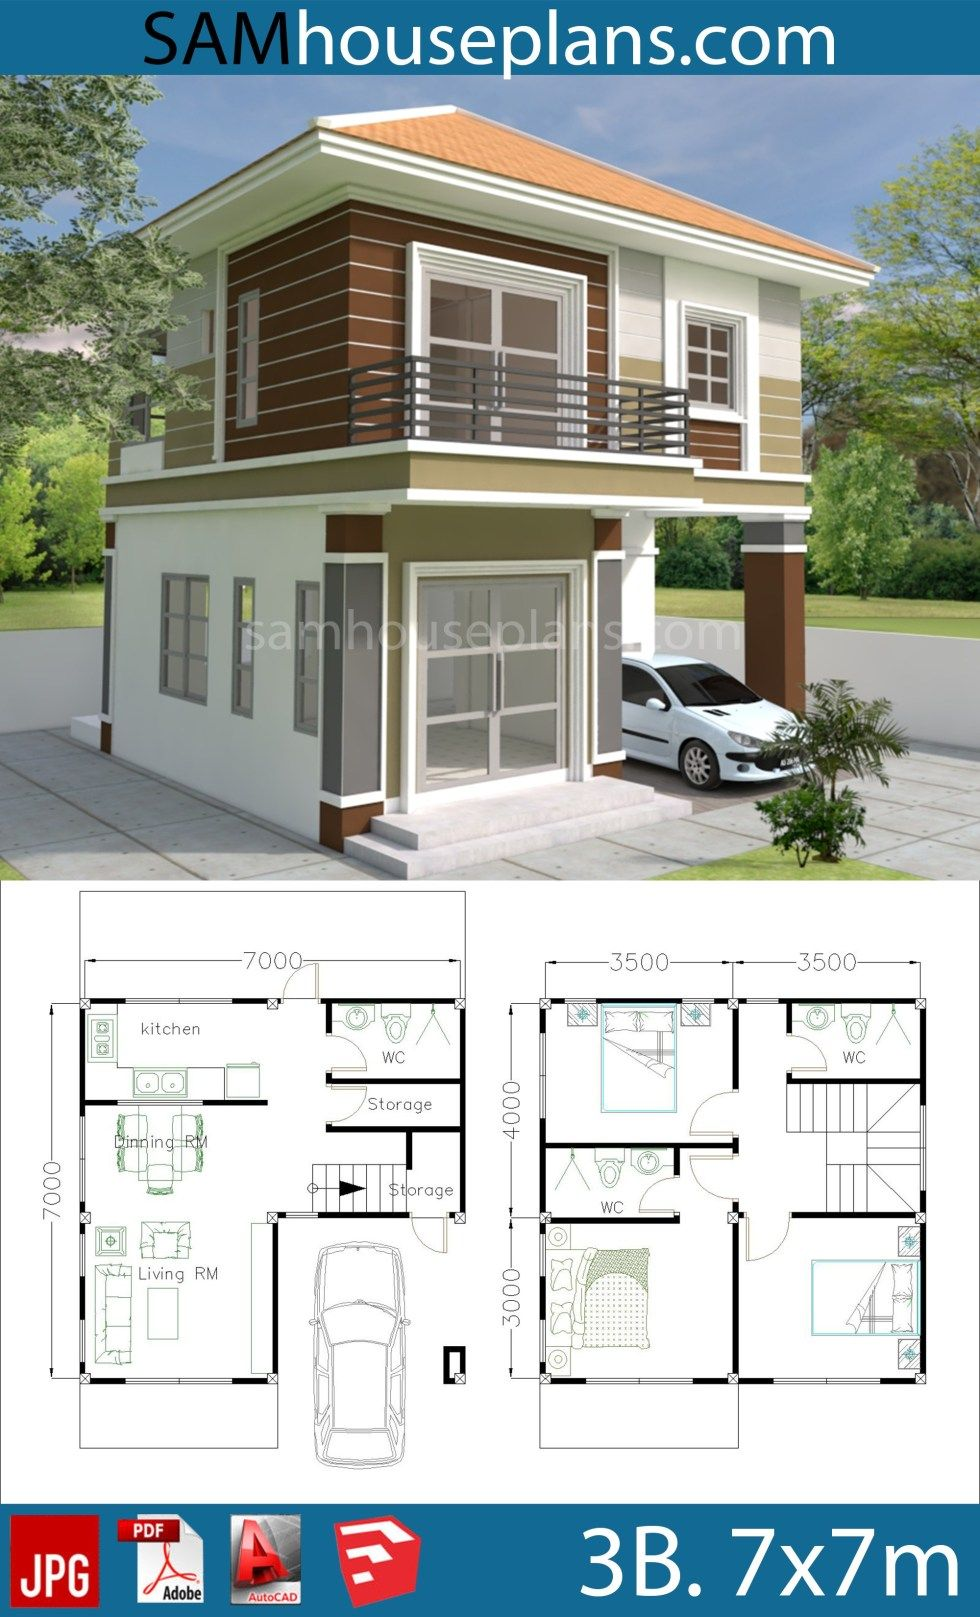 House plans 7x7m with 3 bedrooms in 2019 house design